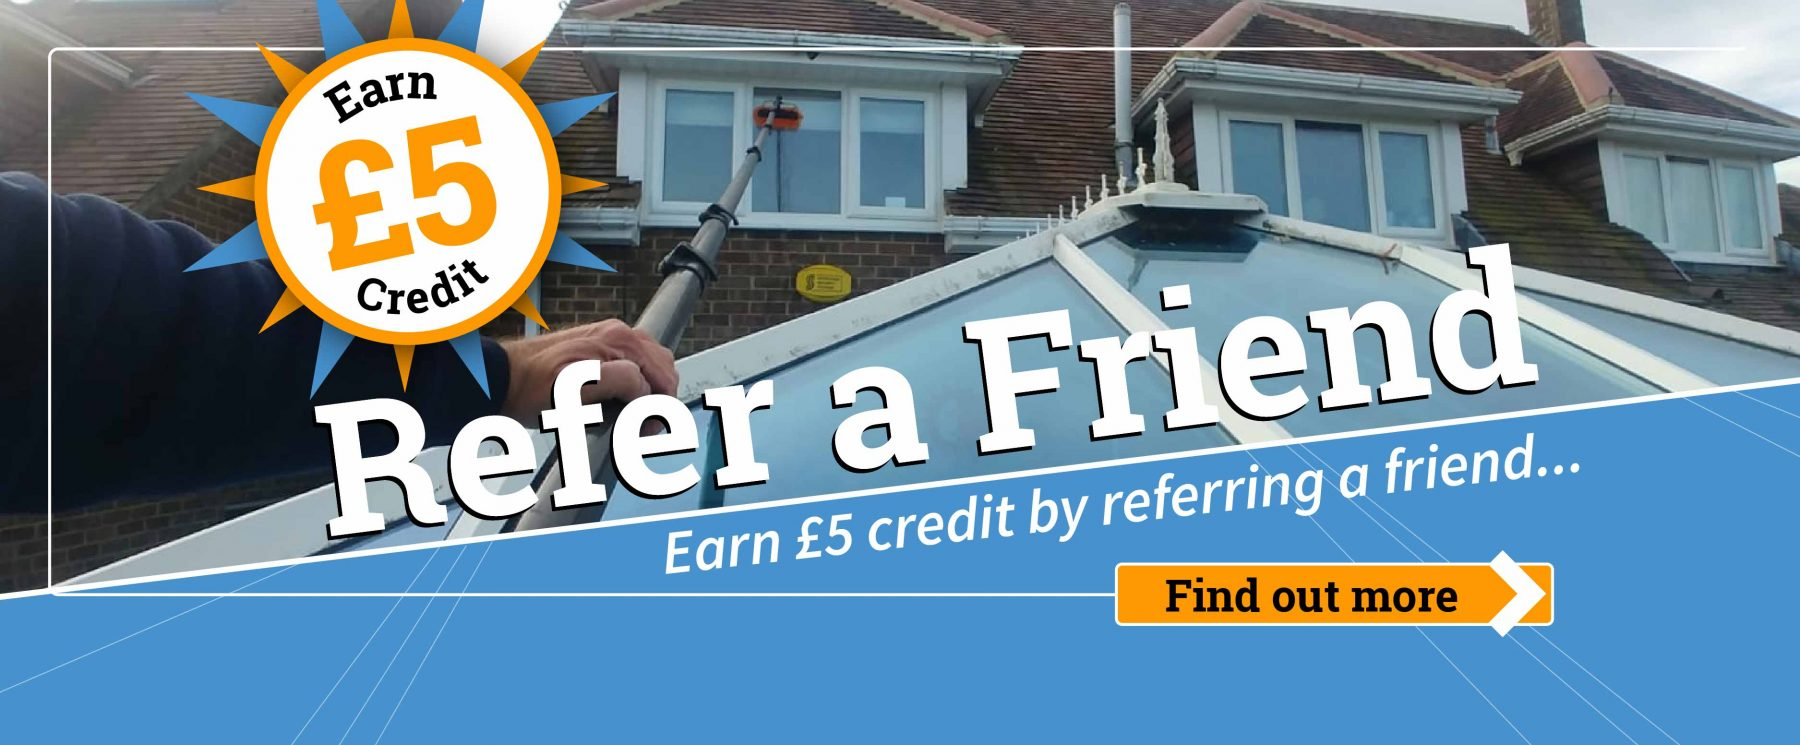 refer-a-friend-for credit